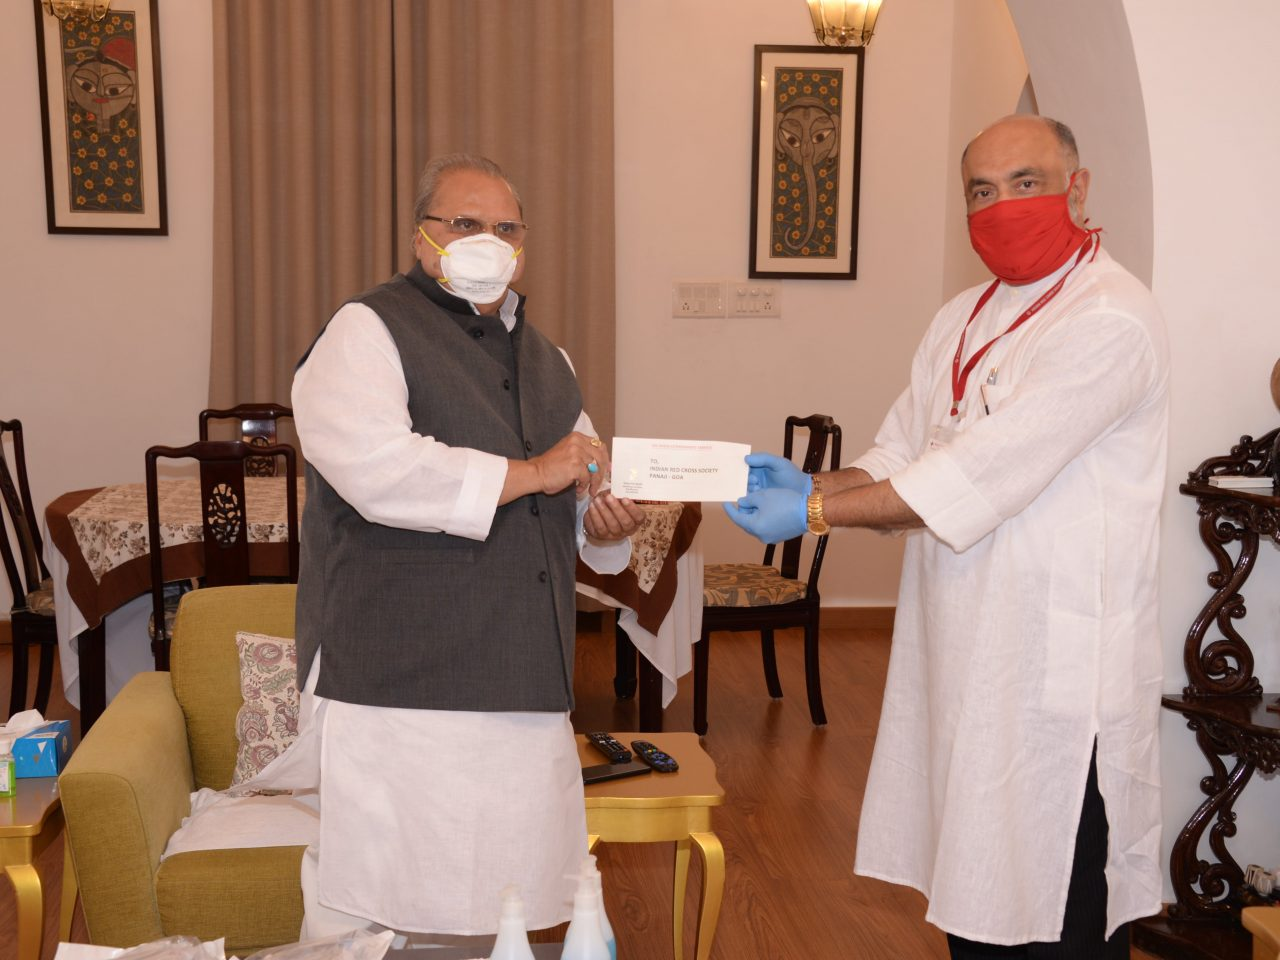 Shri Satya Pal Malik, Governor of Goa handing over a cheque of Rs. 3 Lakhs from the Governor's Discretion fund to Shri Gaurish Dhond, Chairman, Indian Red Cross Society, Goa Branch, to fight against the pandemic of Covid-19